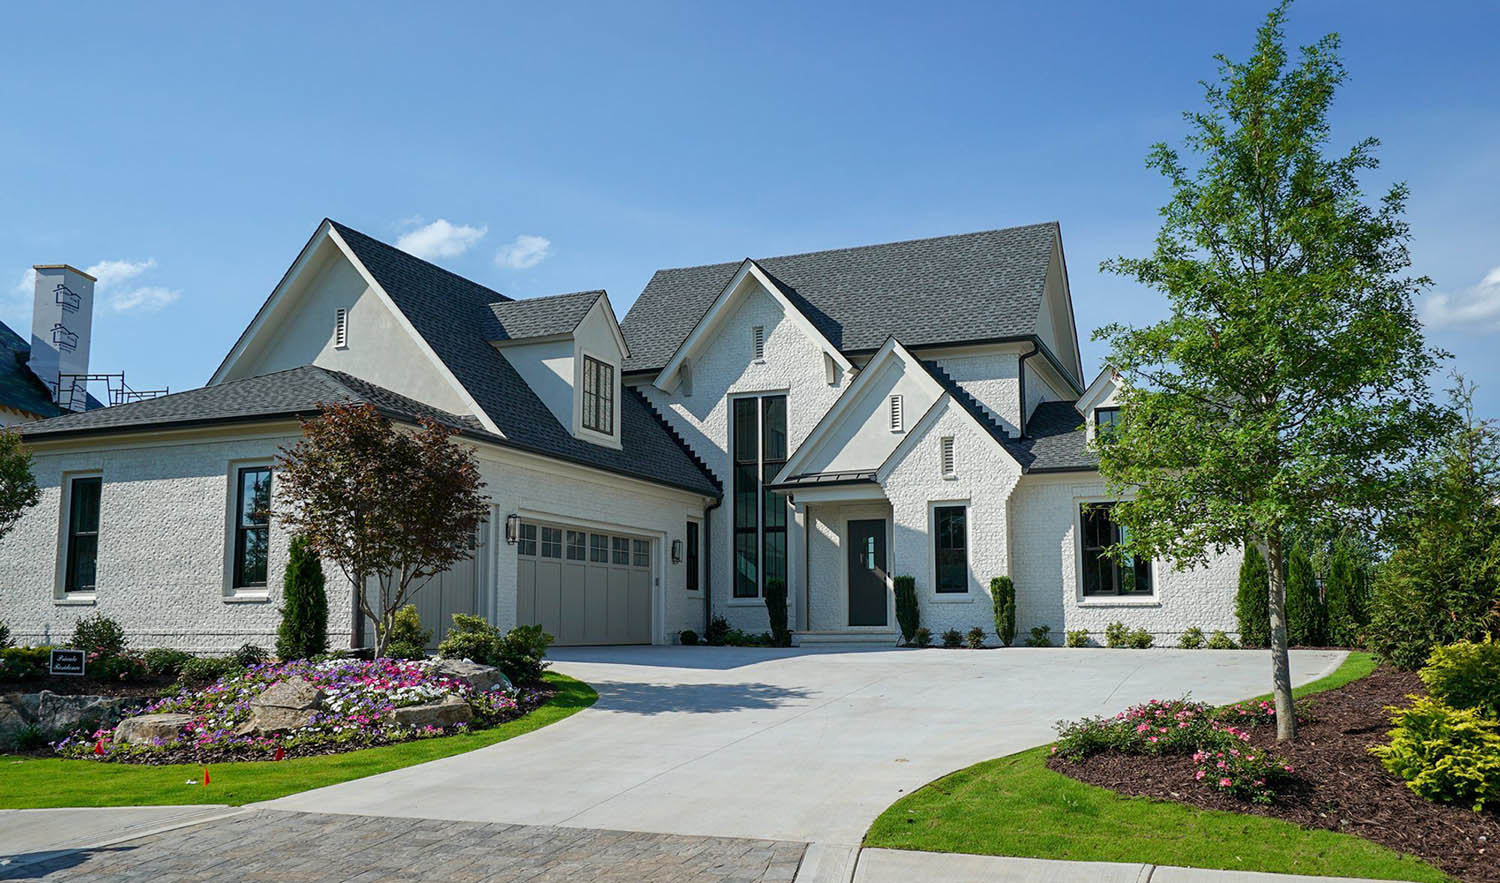 White brick house with stucco. White and black exterior design with gray garage doors. Black shingled roof with black metal accents. Black gutters.